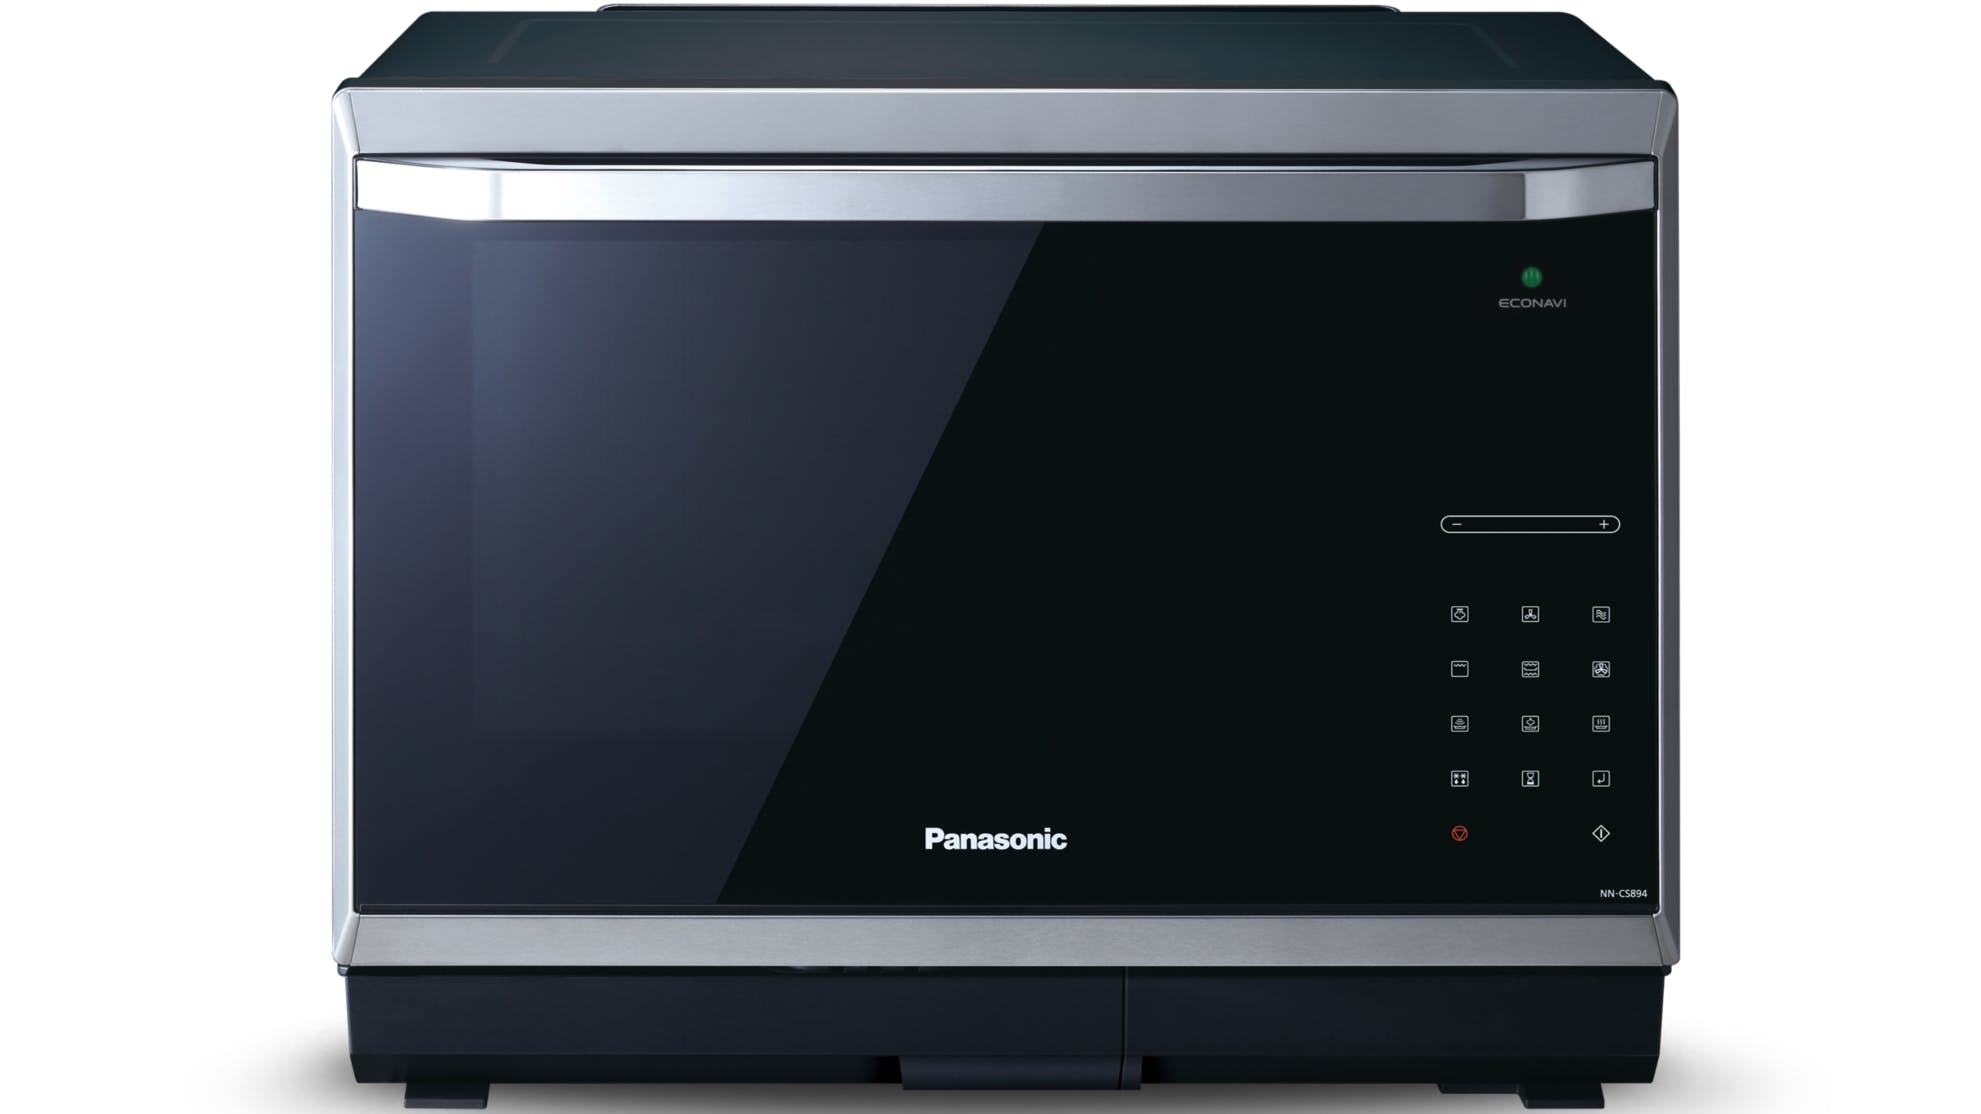 Panasonic 32l Econavi Inverter Steam Convection Microwave Oven